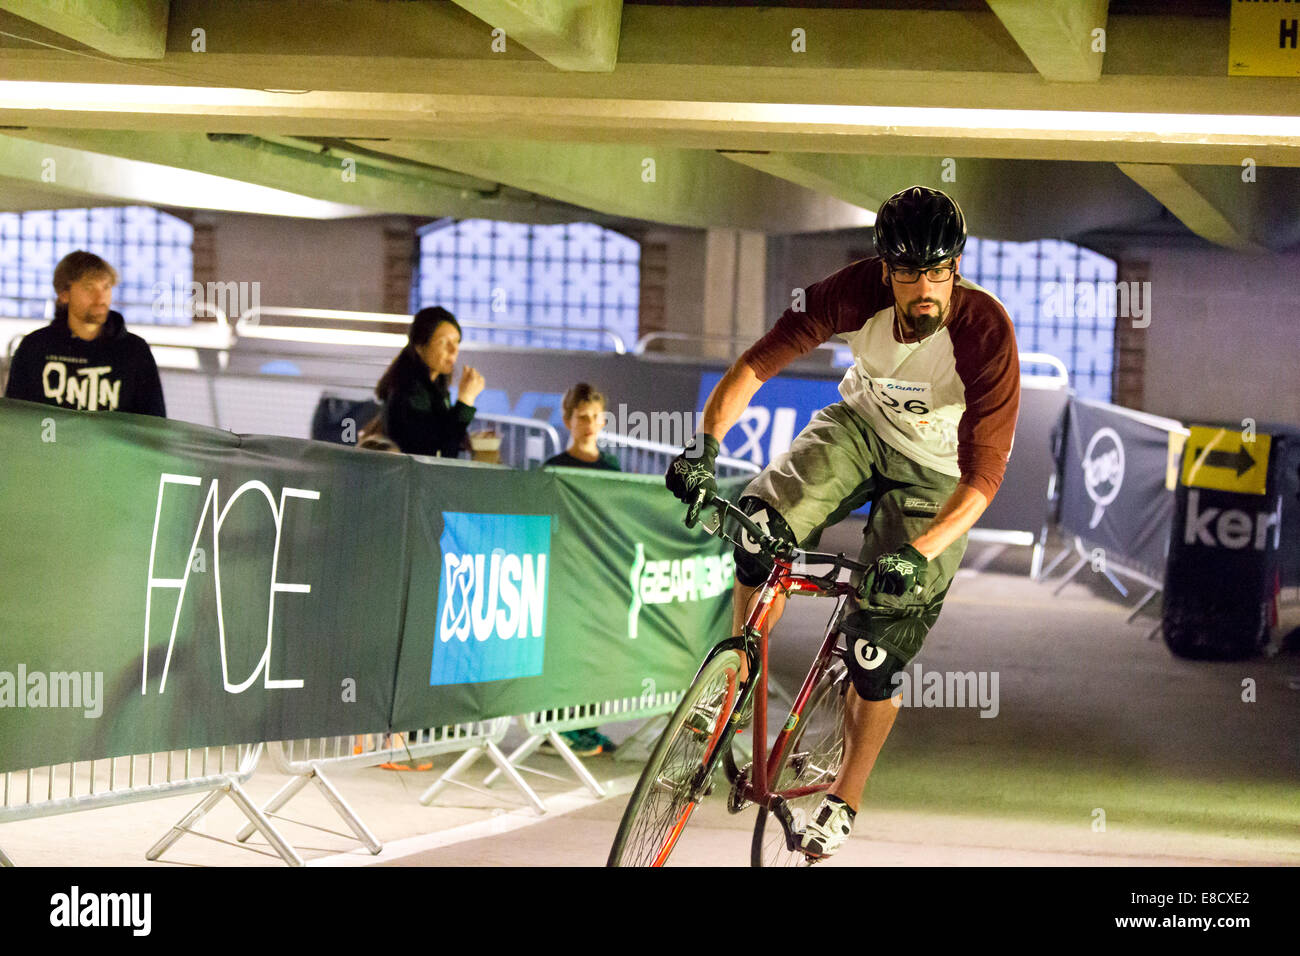 Sebastian SANTISO (126) at Parkour Ride a multi-discipline cycling event held in an abandoned multi-storey car park, - Stock Image